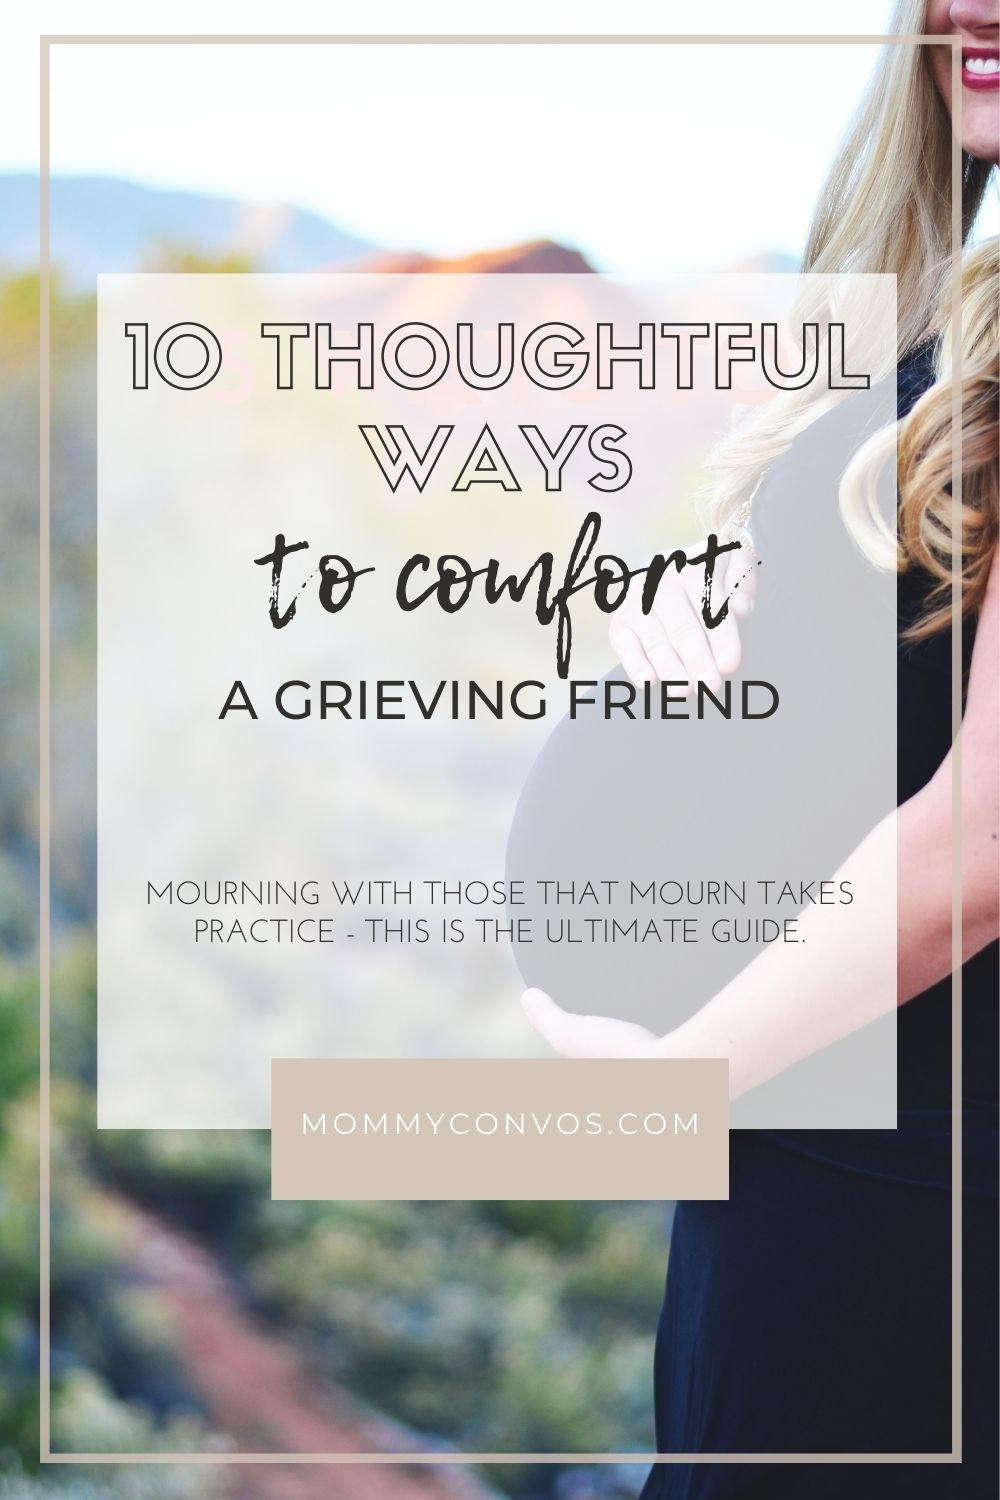 grieving, grief, motherhood, postpartum, infancy loss and awareness, infancy loss, stillborn, how to comfort, miscarriage, infertility, IVF, PPD, PPA, postpartum anxiety, postpartum depression, grief and loss,